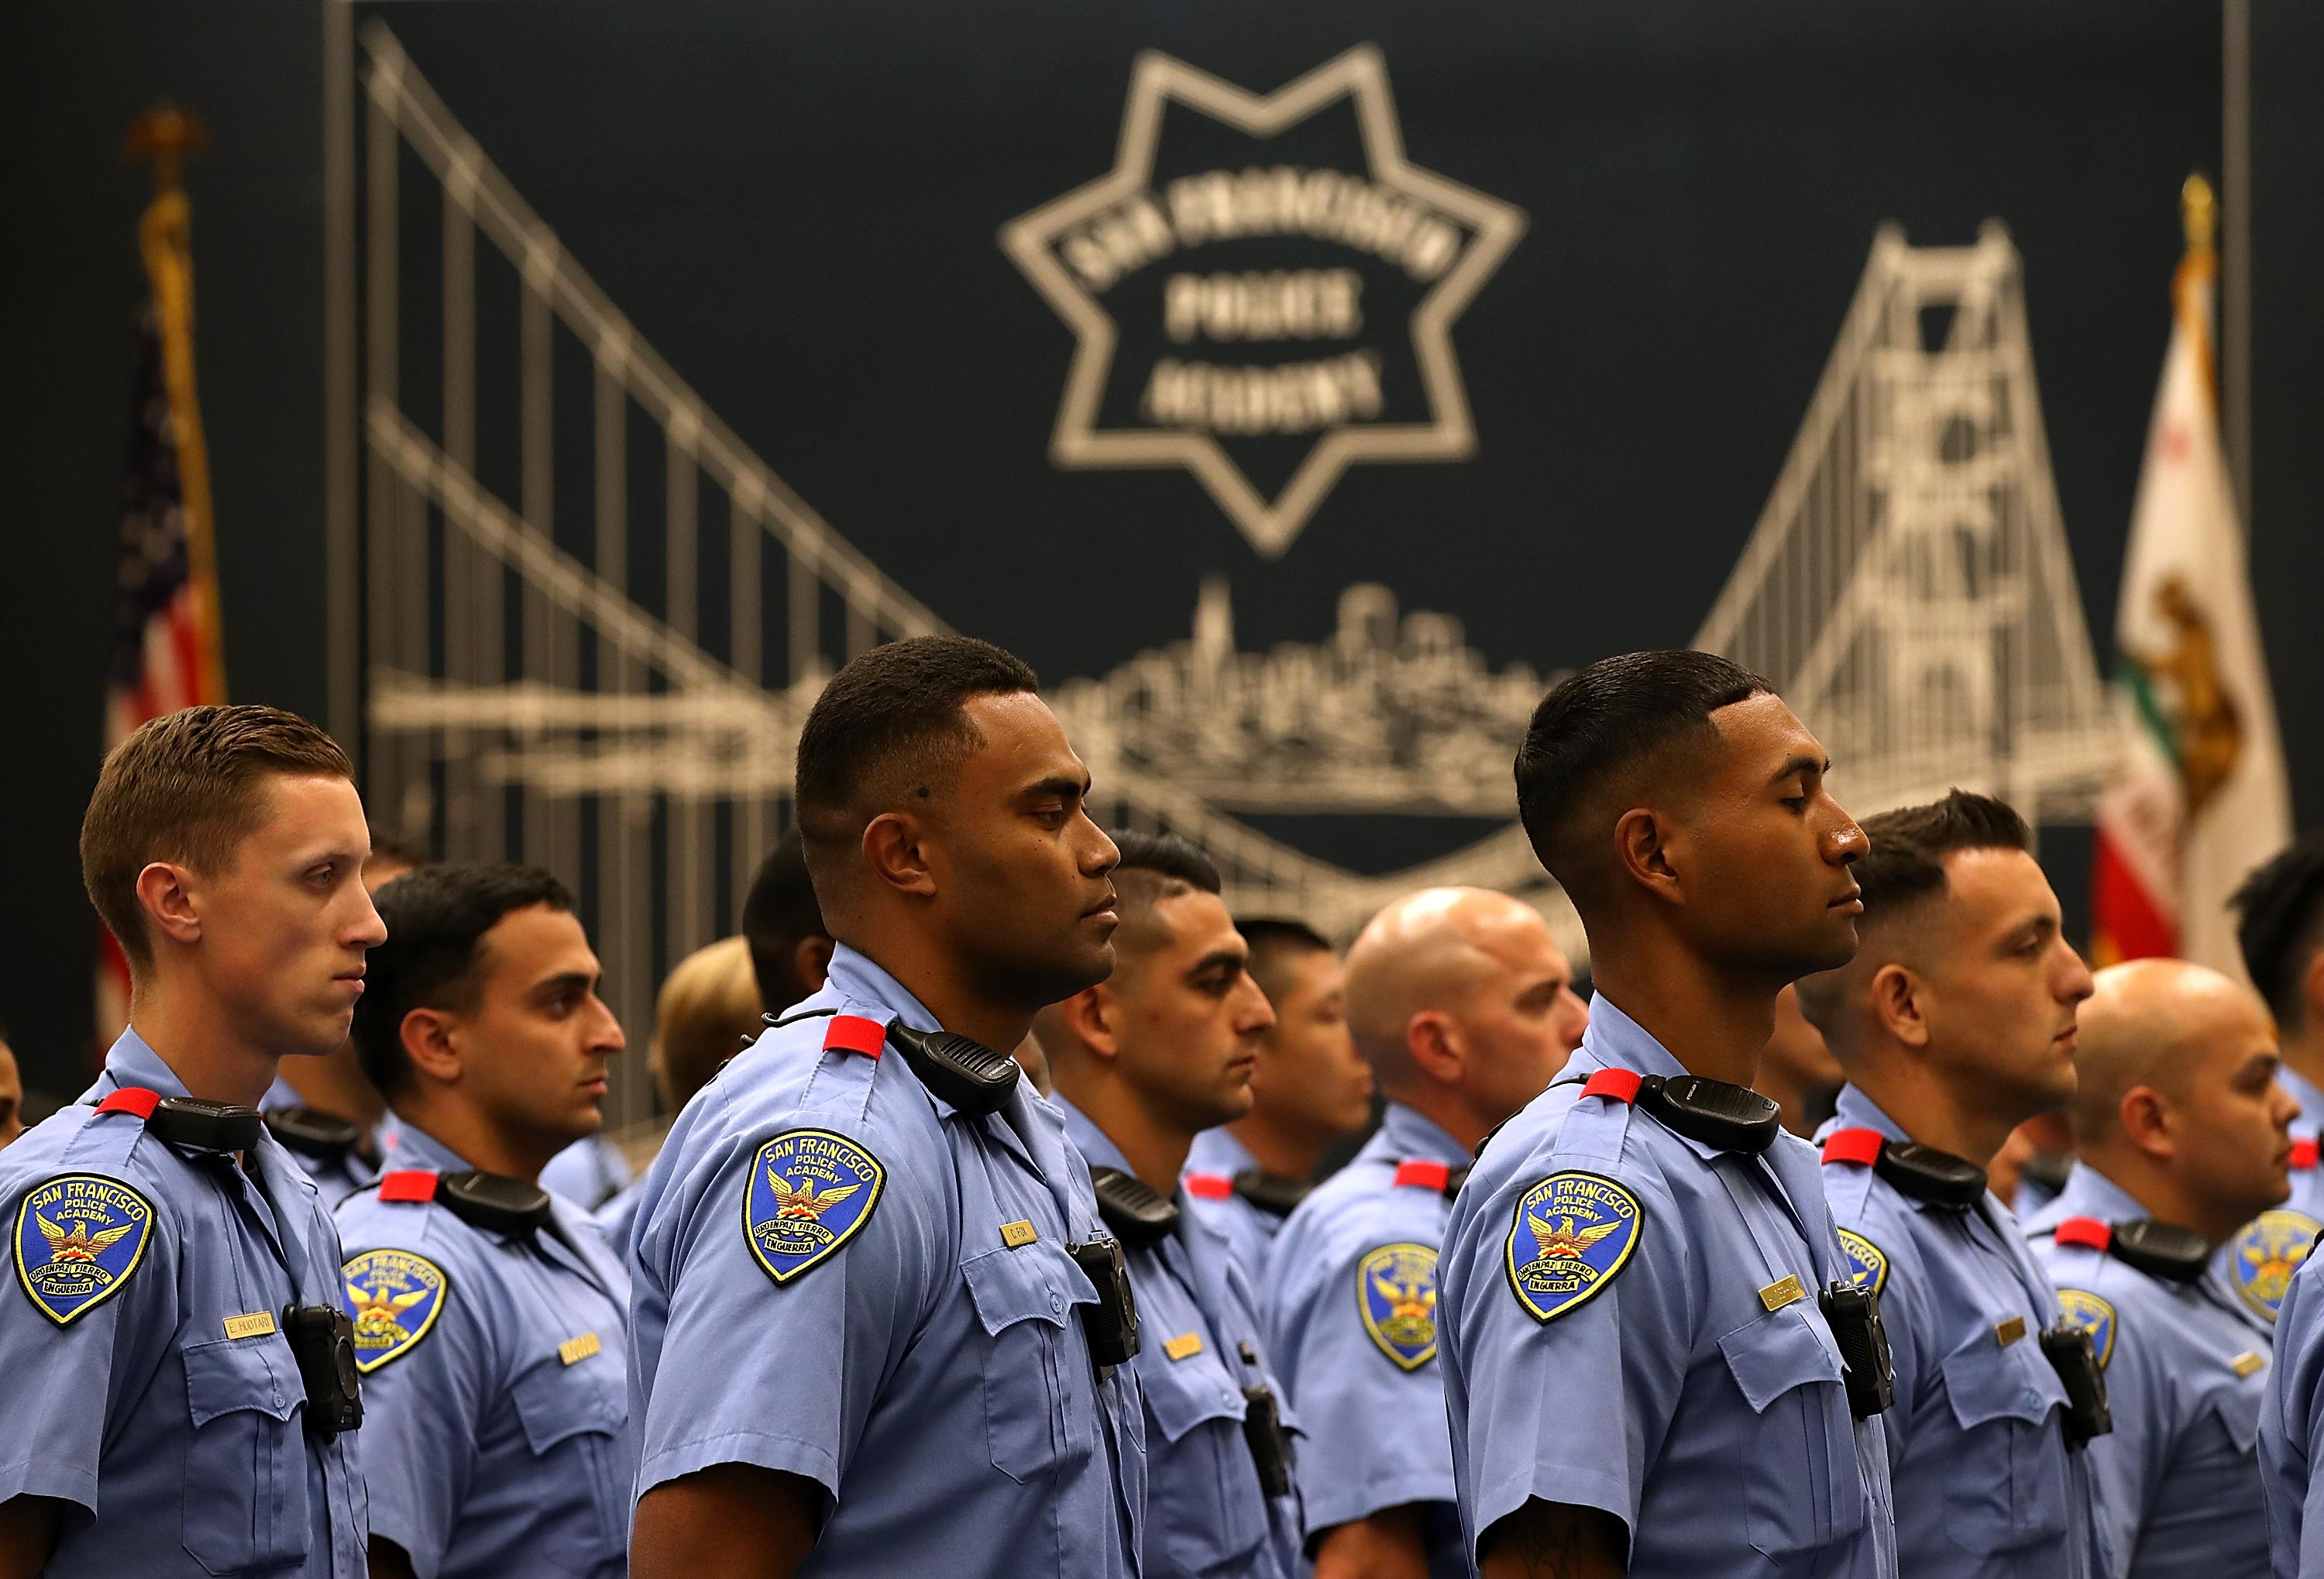 Rows of San Francisco police recruits standing at attention.